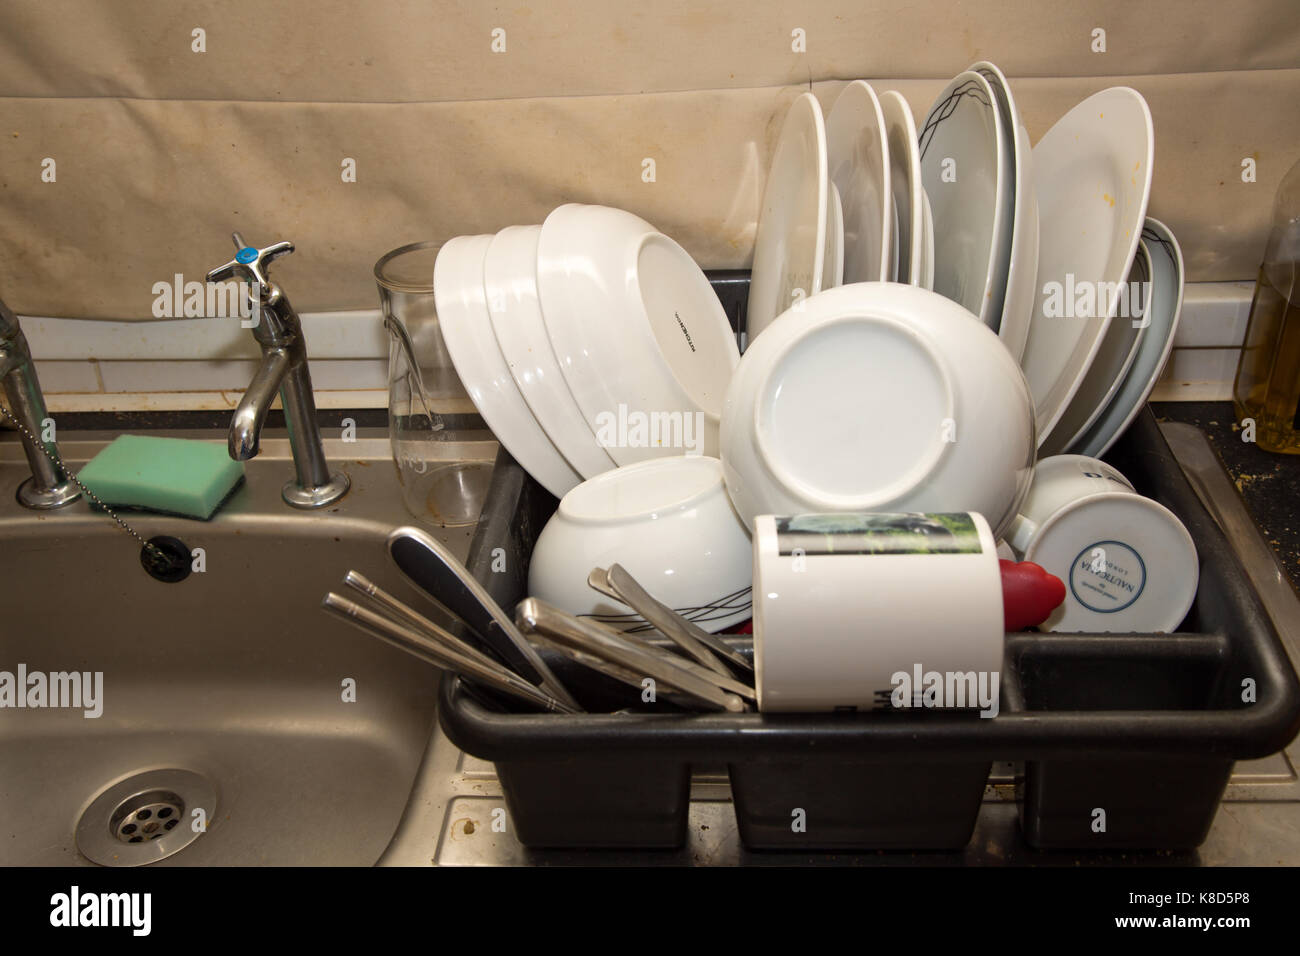 kitchen draining board storage organizers domestic full of washed crockery and cutlery